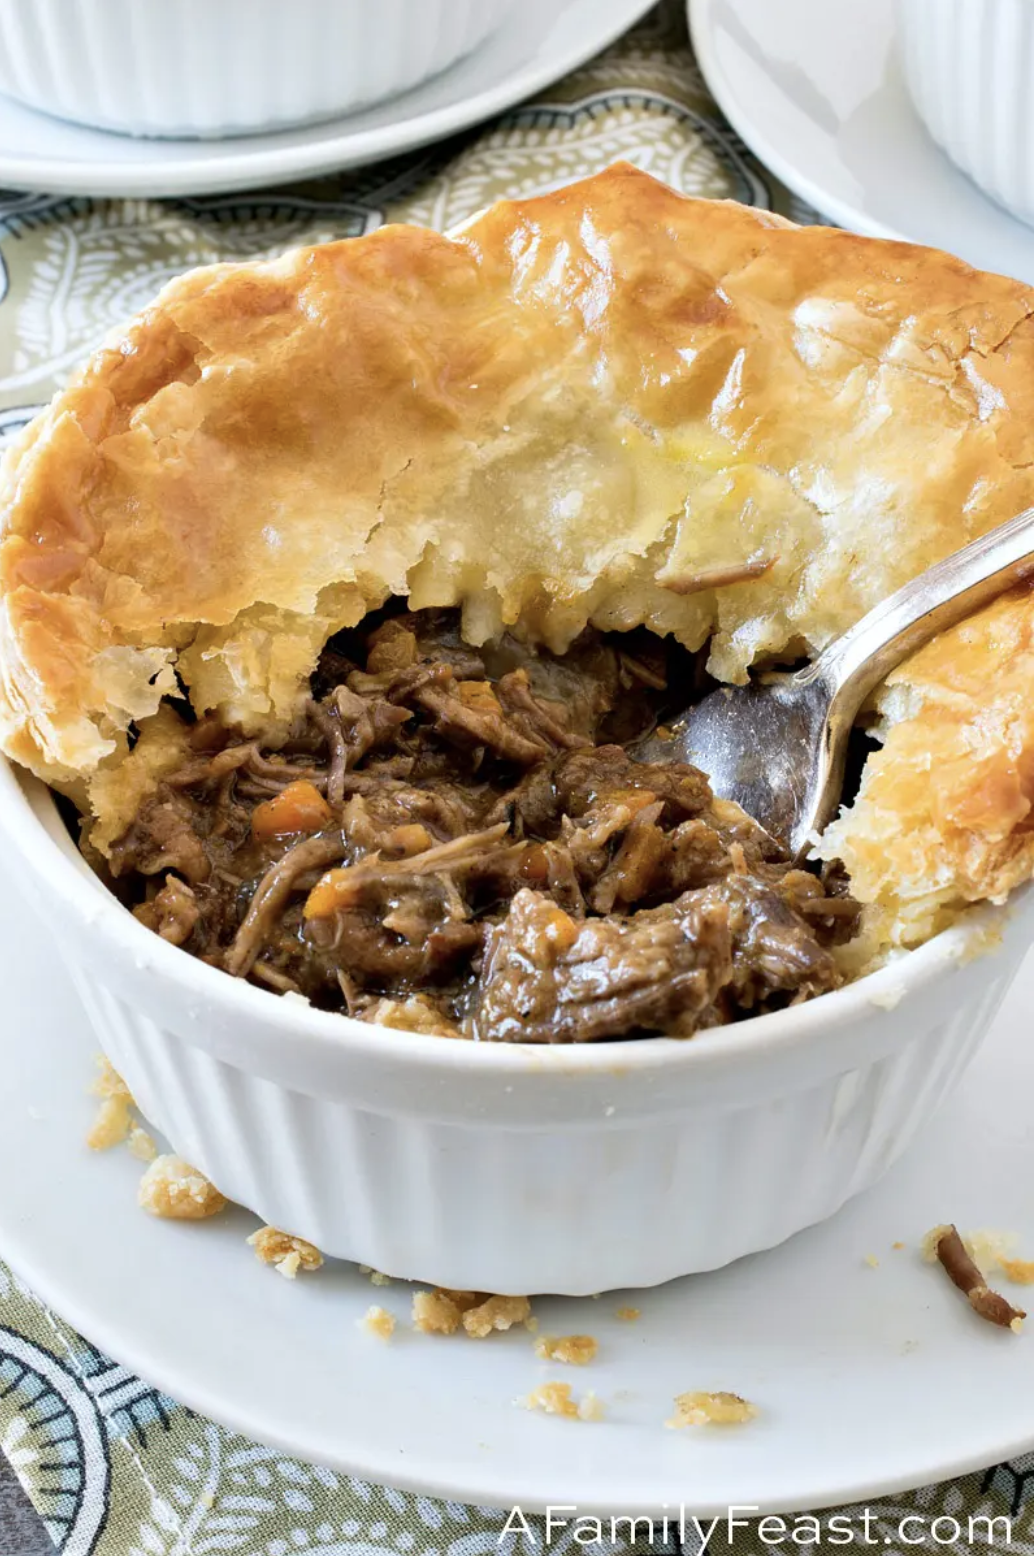 A white ramekin holds a meat pie, its crispy, flaky crust broken through to expose tender shredded beef in a thick, rich sauce